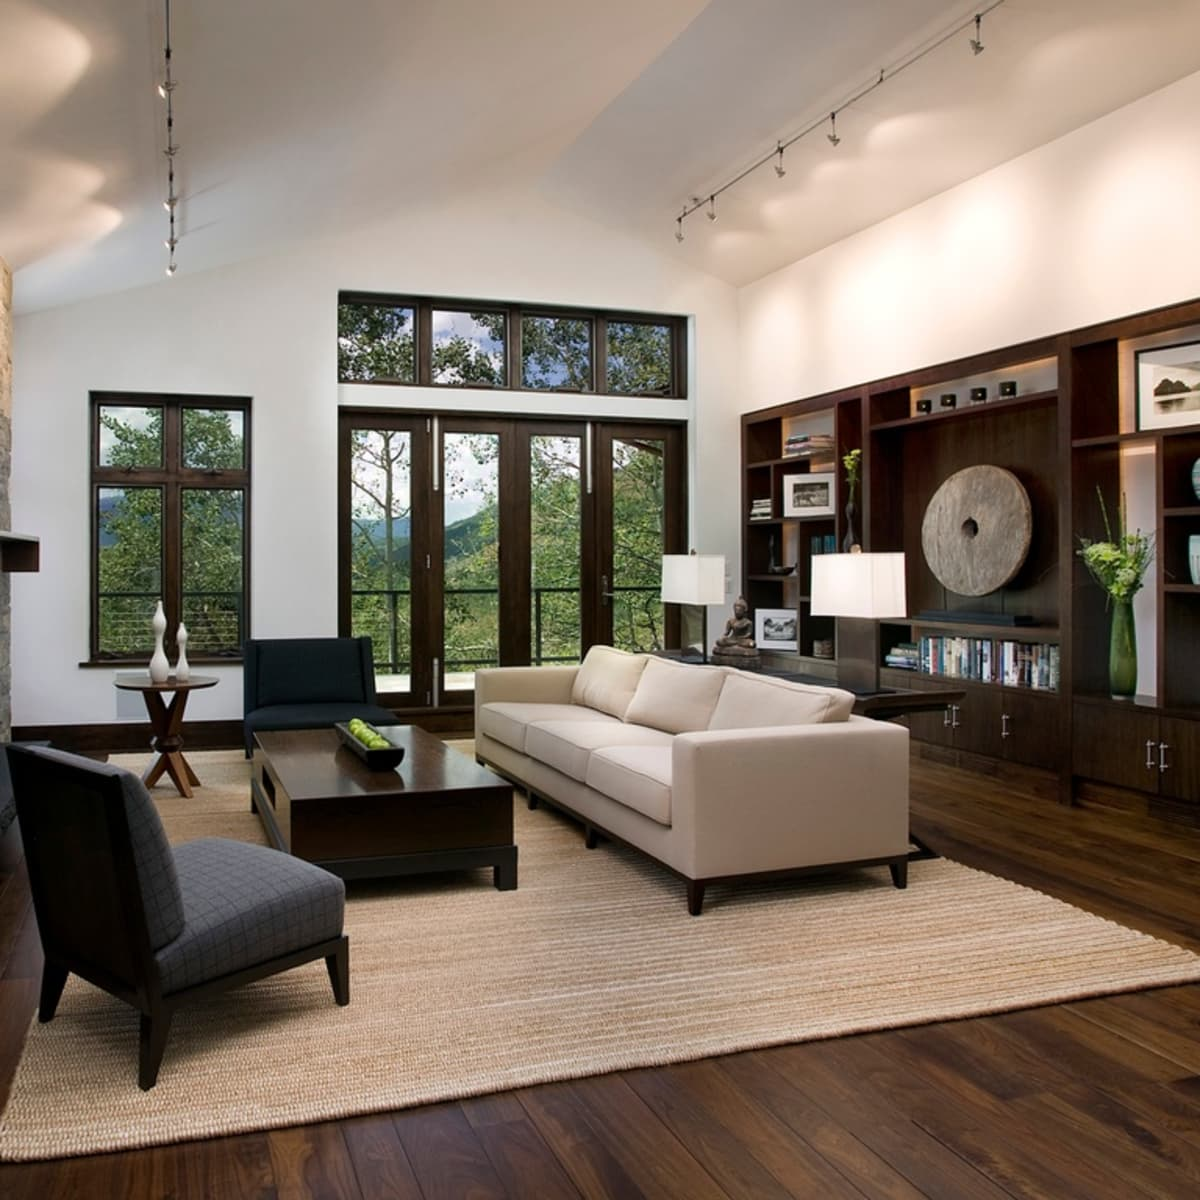 Natural rug in living room